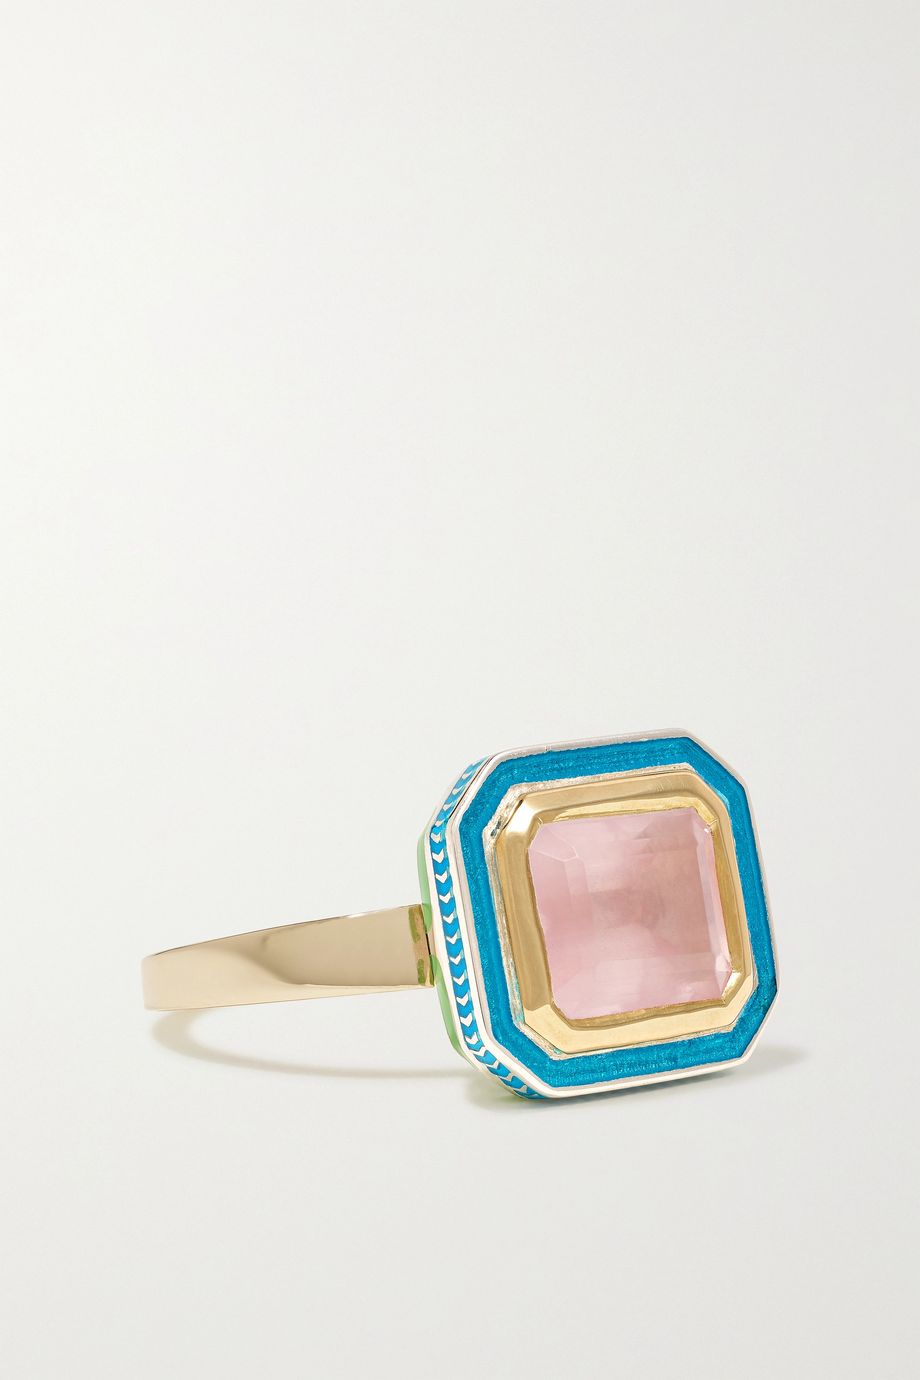 Alice Cicolini 14-karat gold, sterling silver, quartz and enamel ring